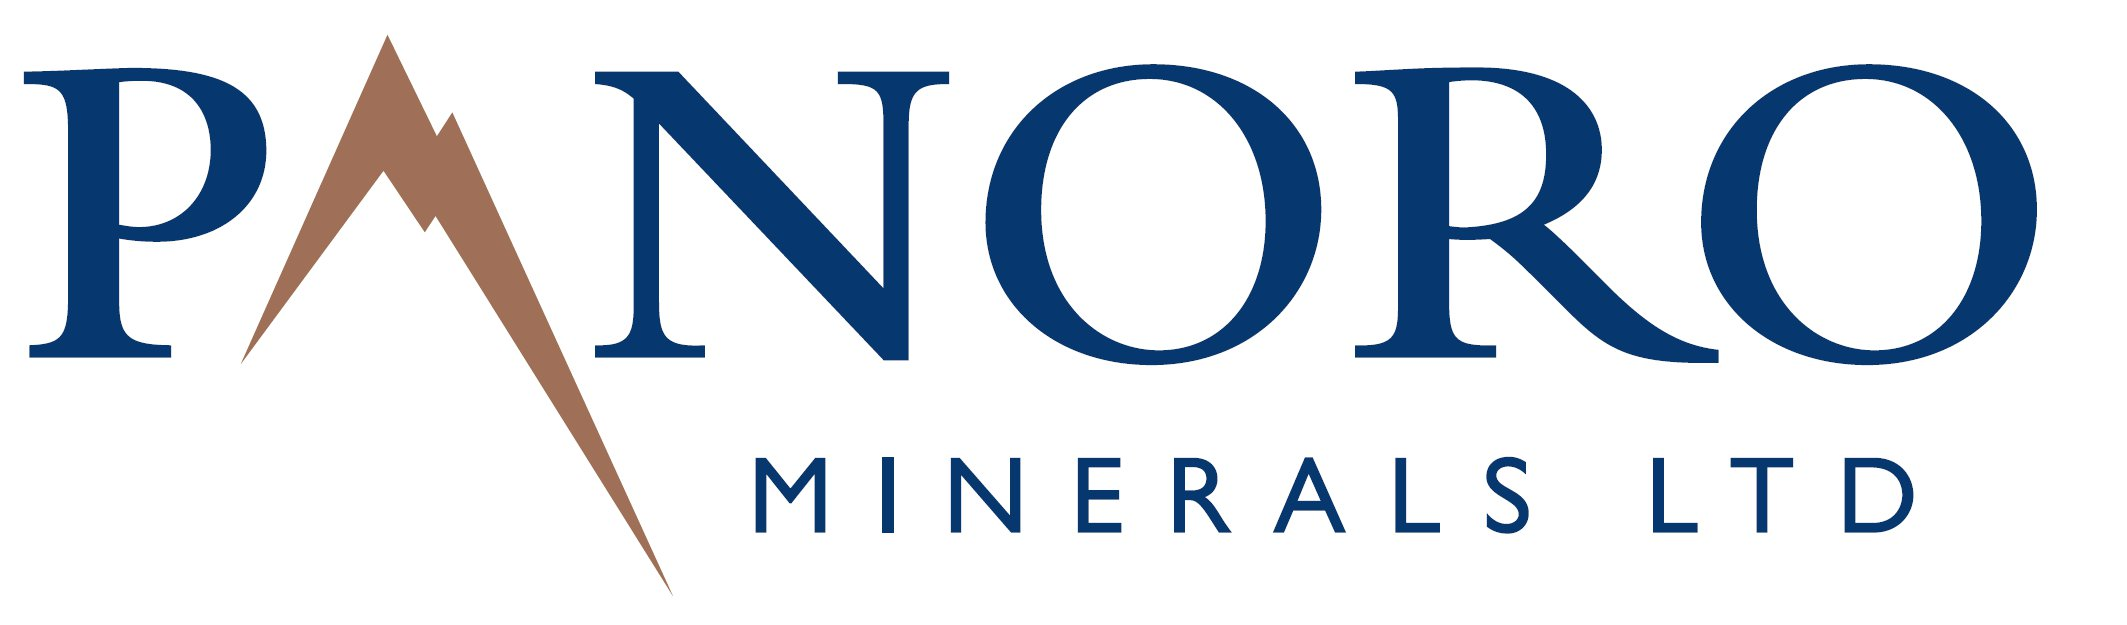 Panoro Minerals Update on Exploration Plans at Cotabambas Project, Peru